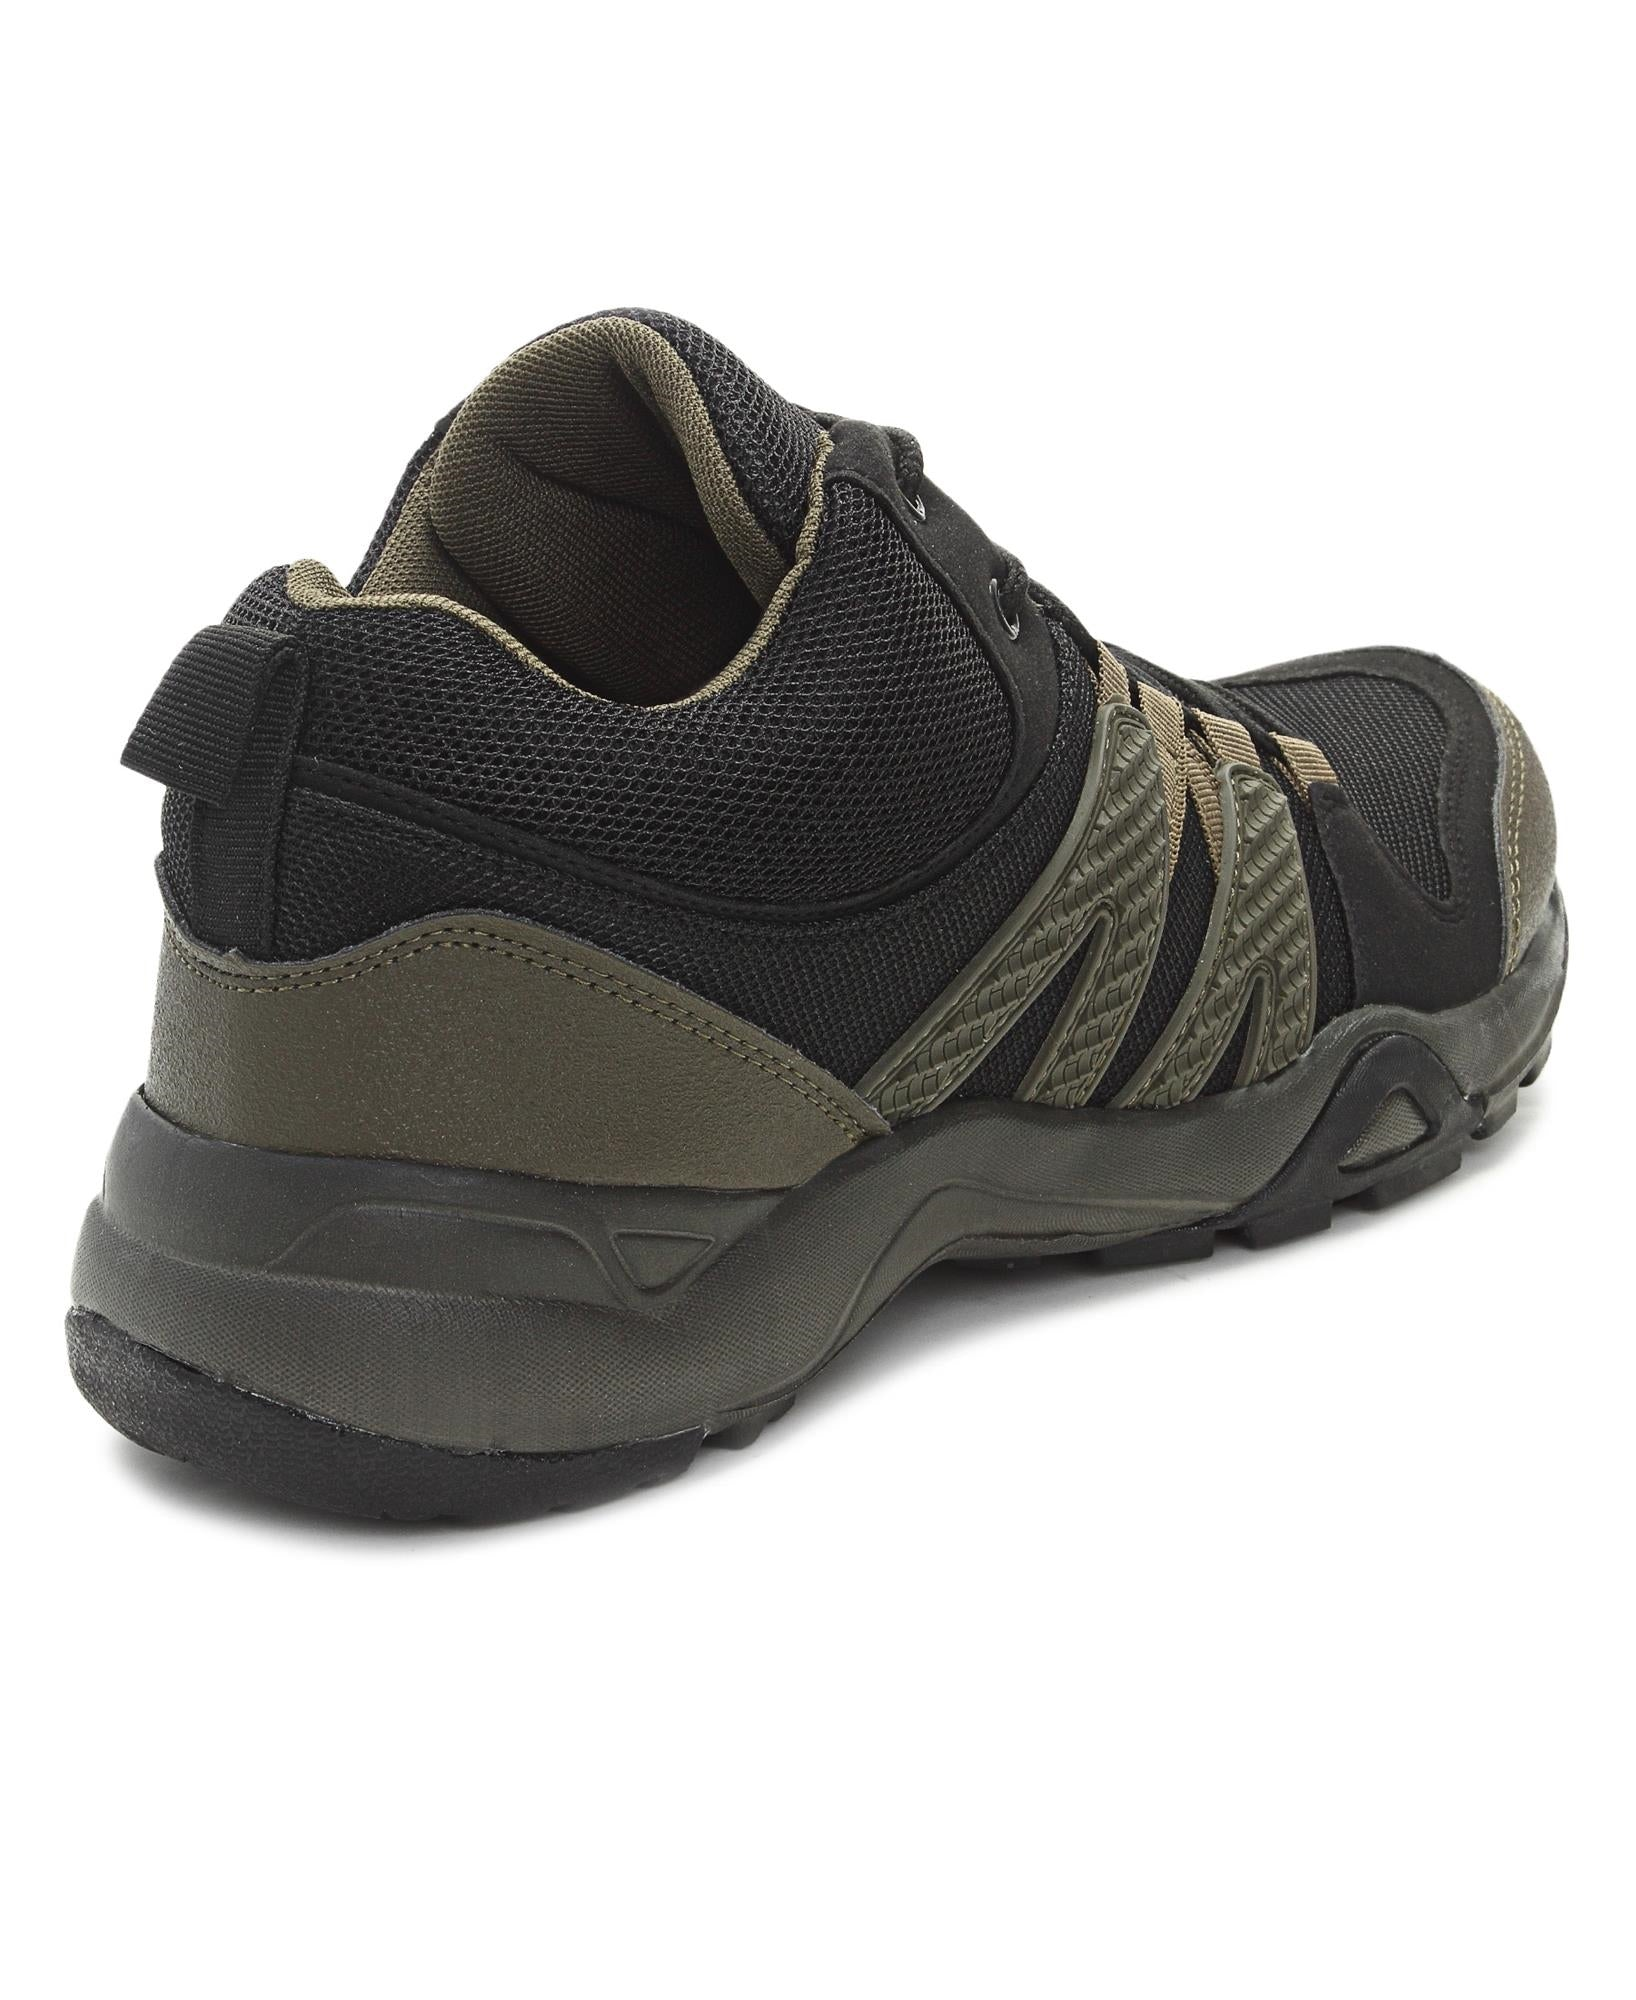 Men's Hiker Boot Sneakers - Black